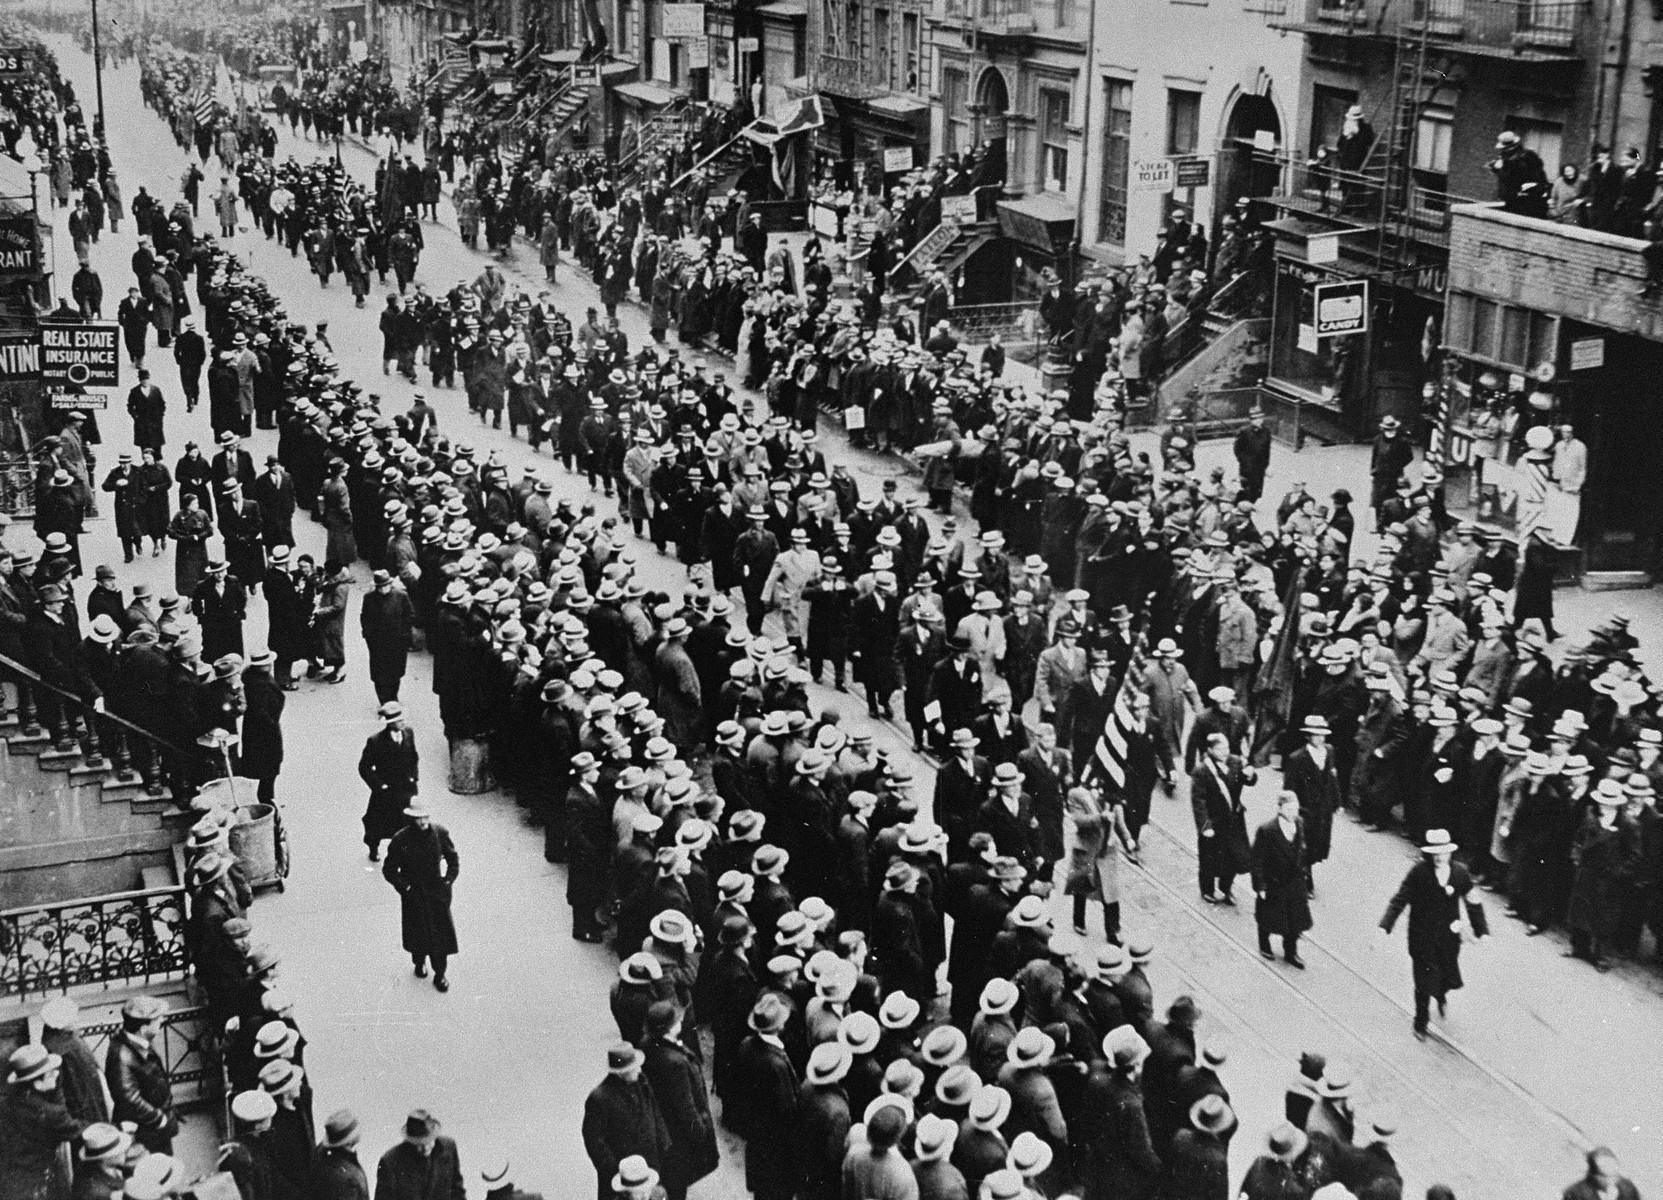 Jewish war veterans march to city hall with members of the American Legion and other veterans organizations to protest against the Nazi persecution of German Jews.  At city hall they will present a petition to the mayor, asking Congress to lodge a formal protest against the Nazi regime.